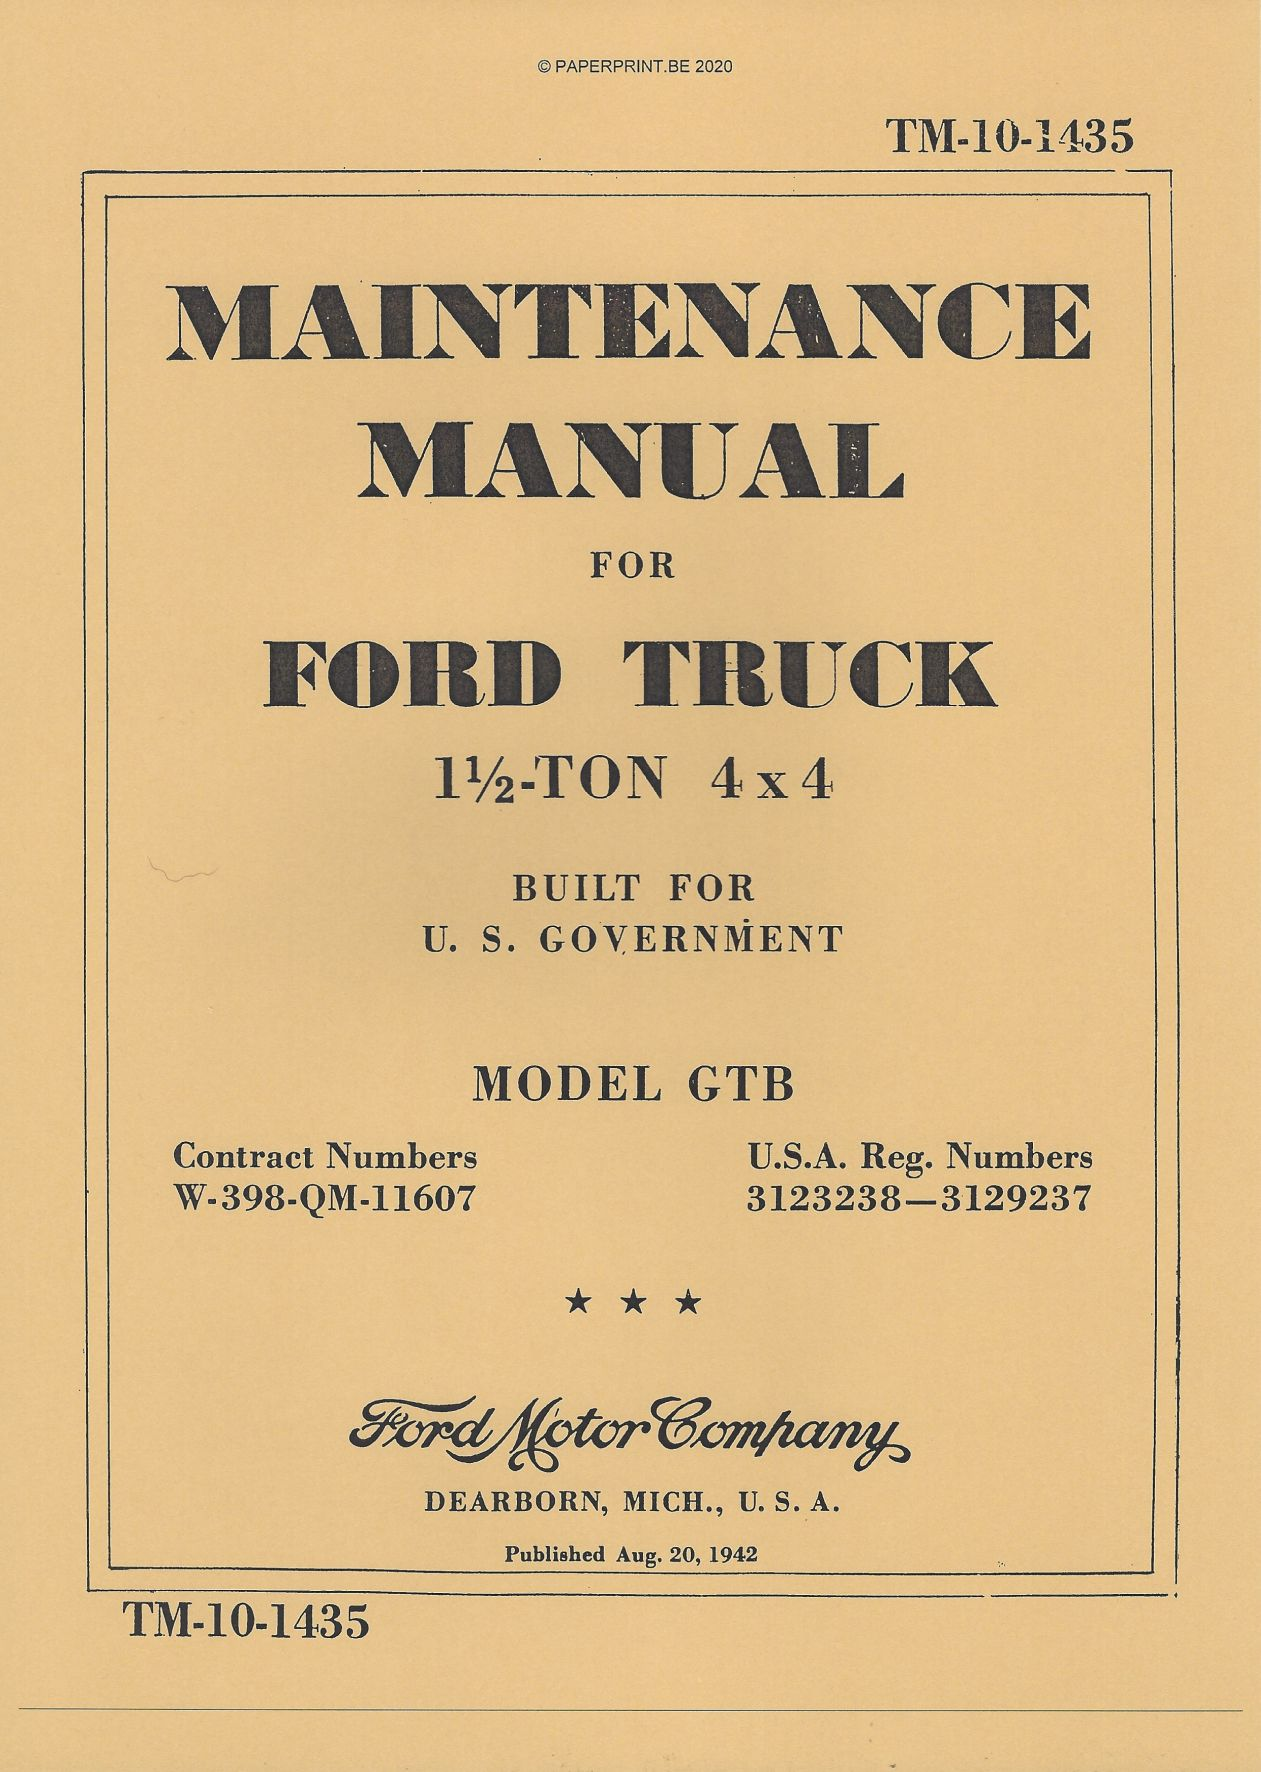 TM 10-1435 US FORD GTB MAINTENANCE MANUAL